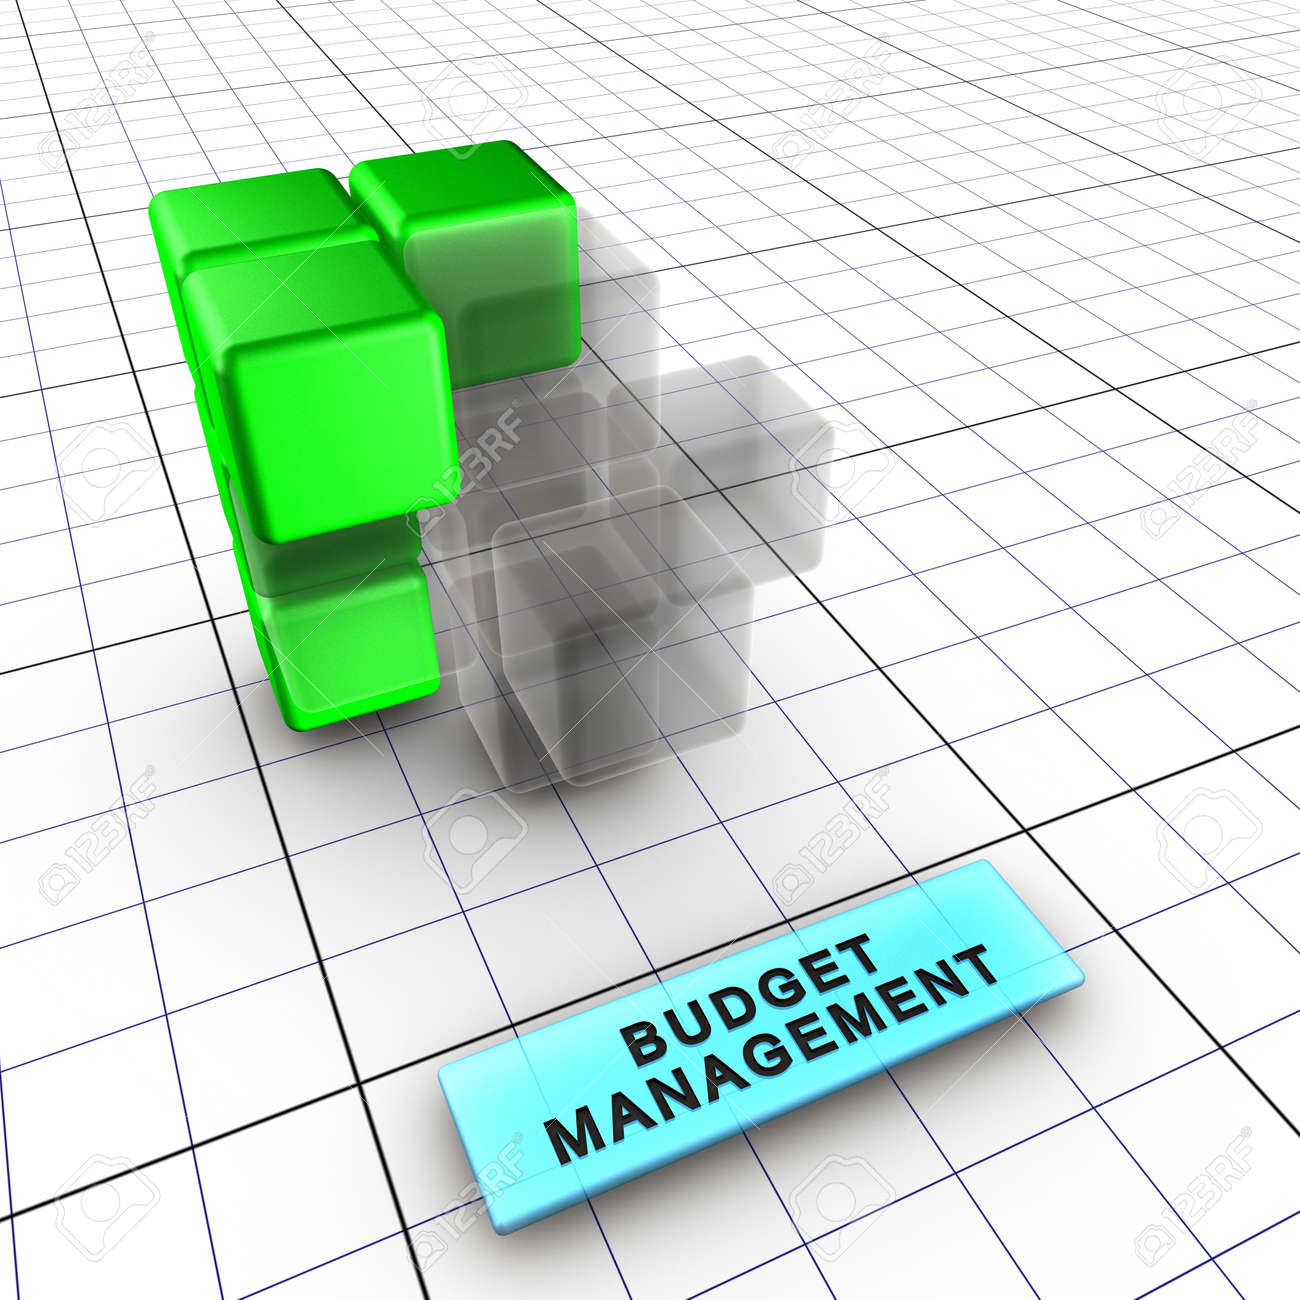 Budget, quality, performance and shedule managements integrate risk management (identification, analysis, tracking, control). Risk management is integral to project management.6 figures depict risk management process and interactions: 1-Integrated risk ma - 7444320